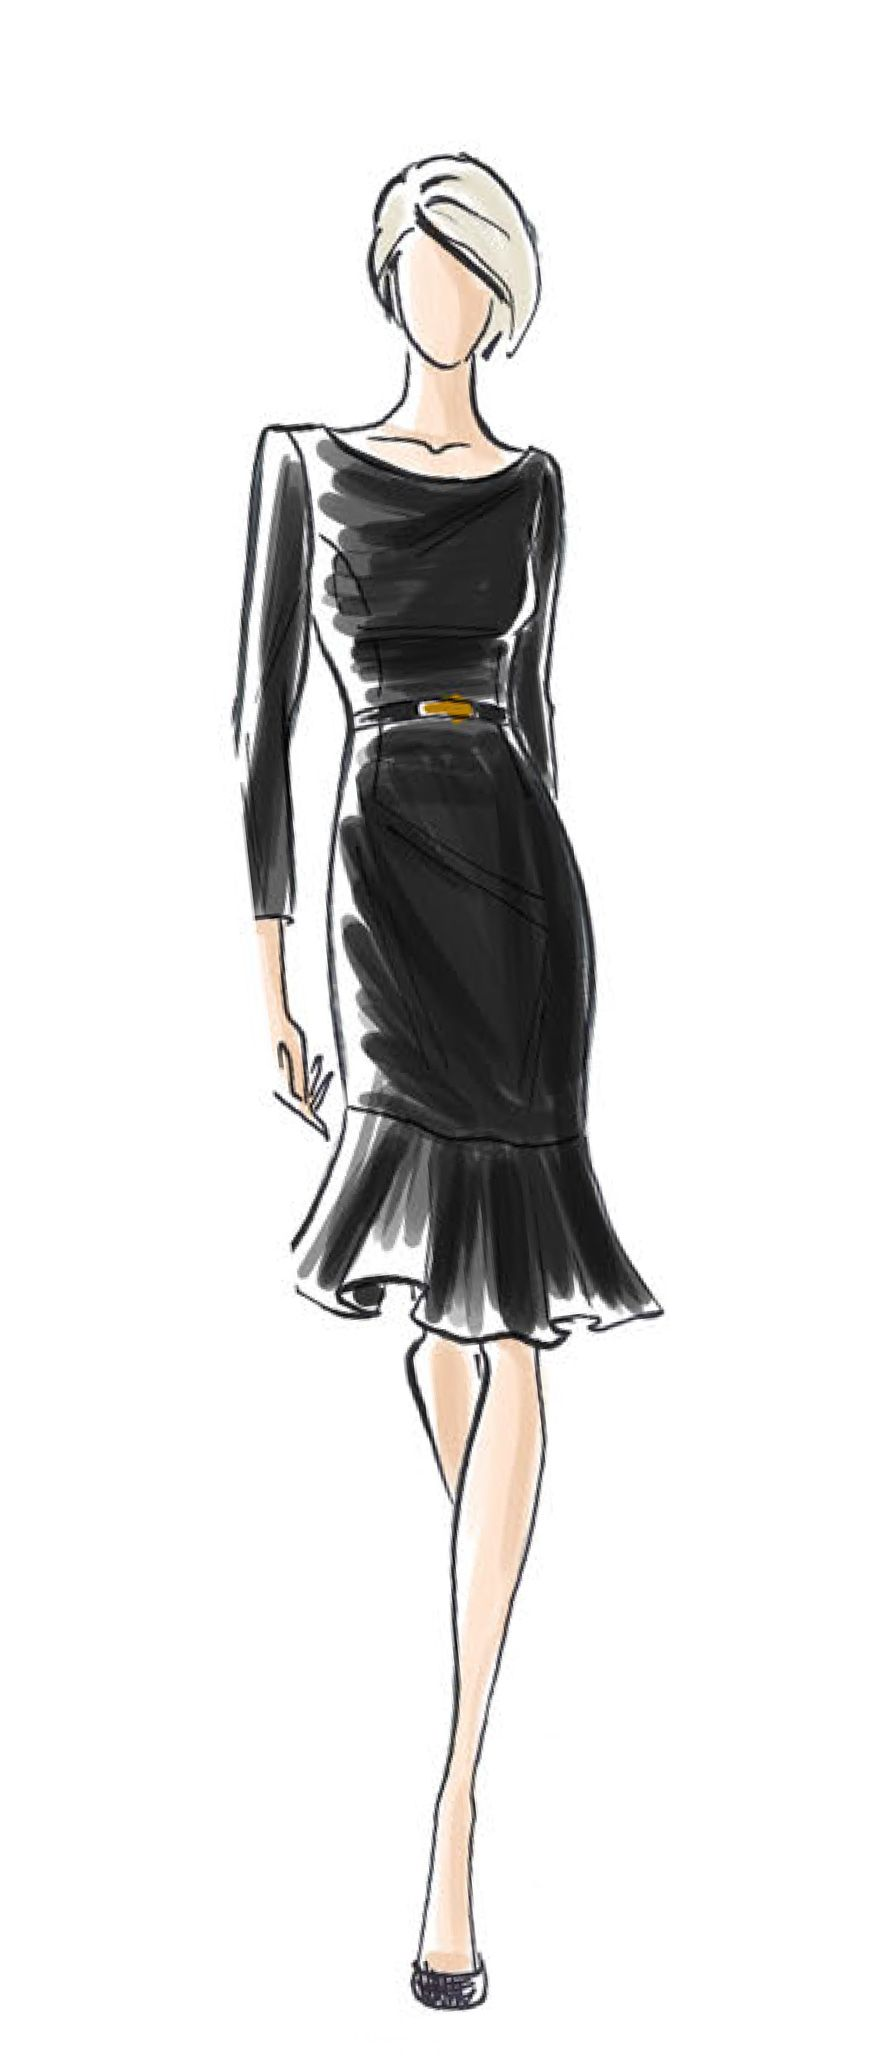 From Ivankau2019s Desk Dress Code | Hotel Uniform Sketches And Trump Hotels